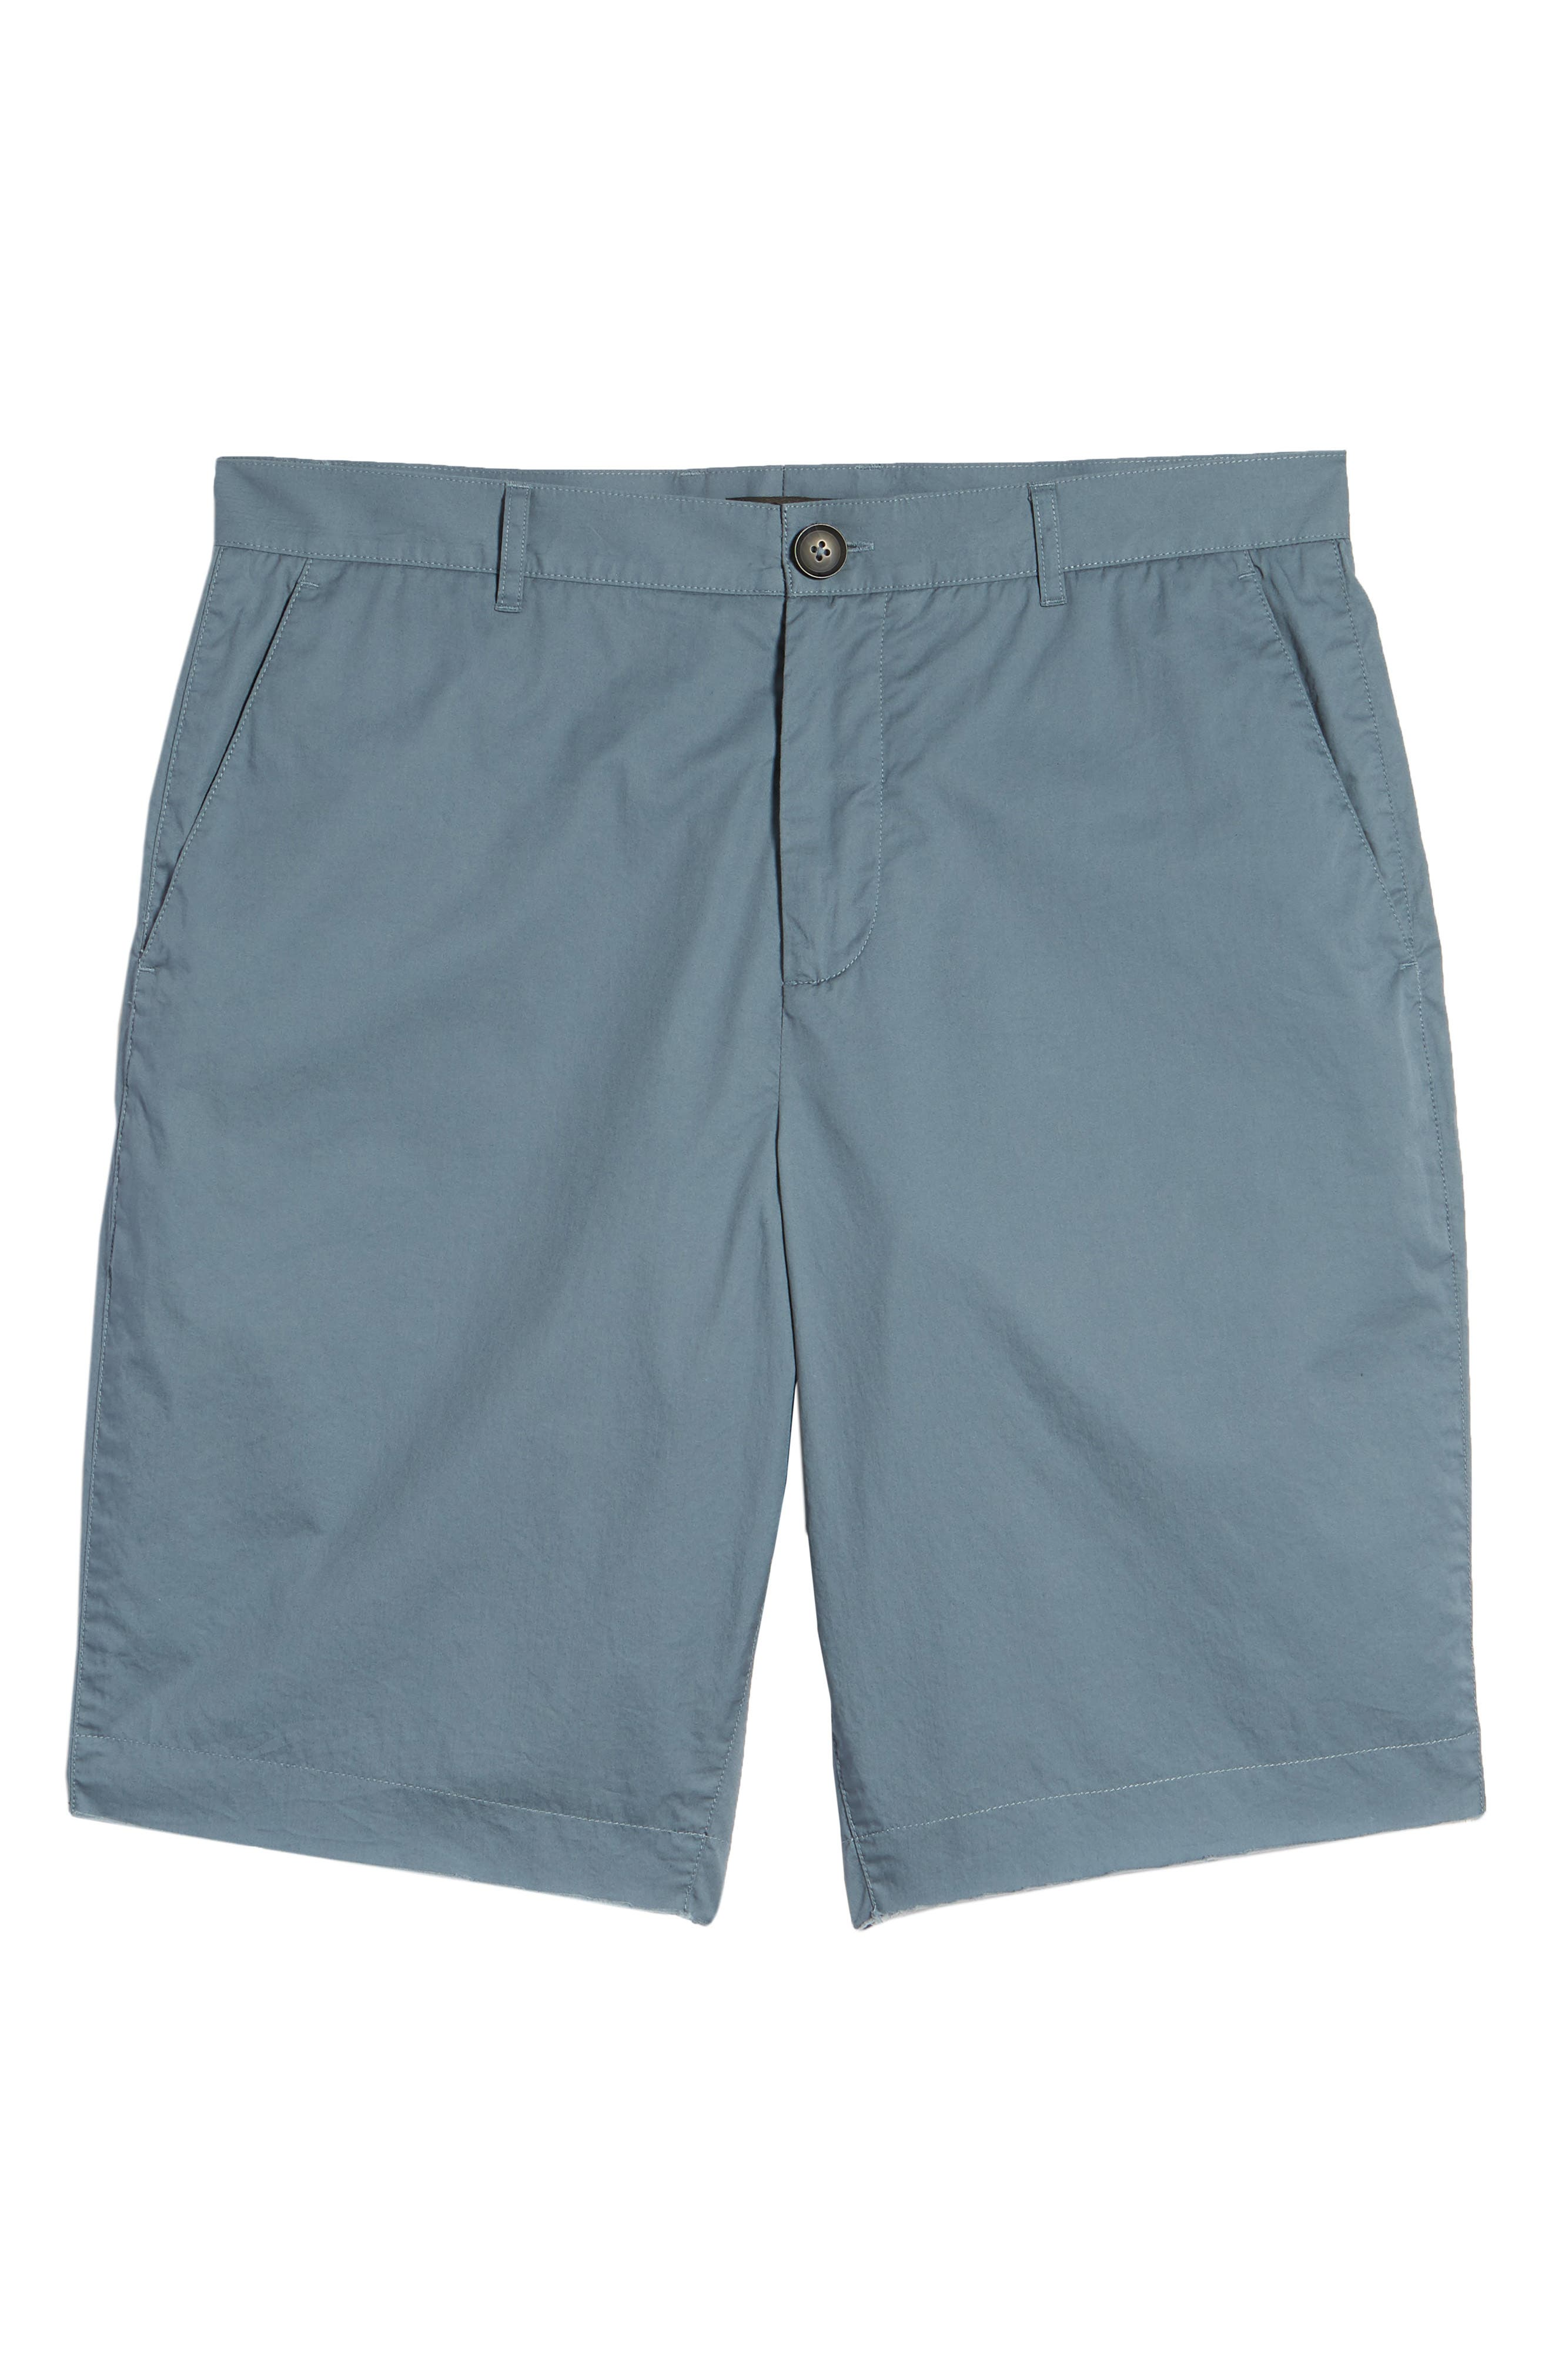 Poplin Cotton Shorts,                             Alternate thumbnail 6, color,                             425